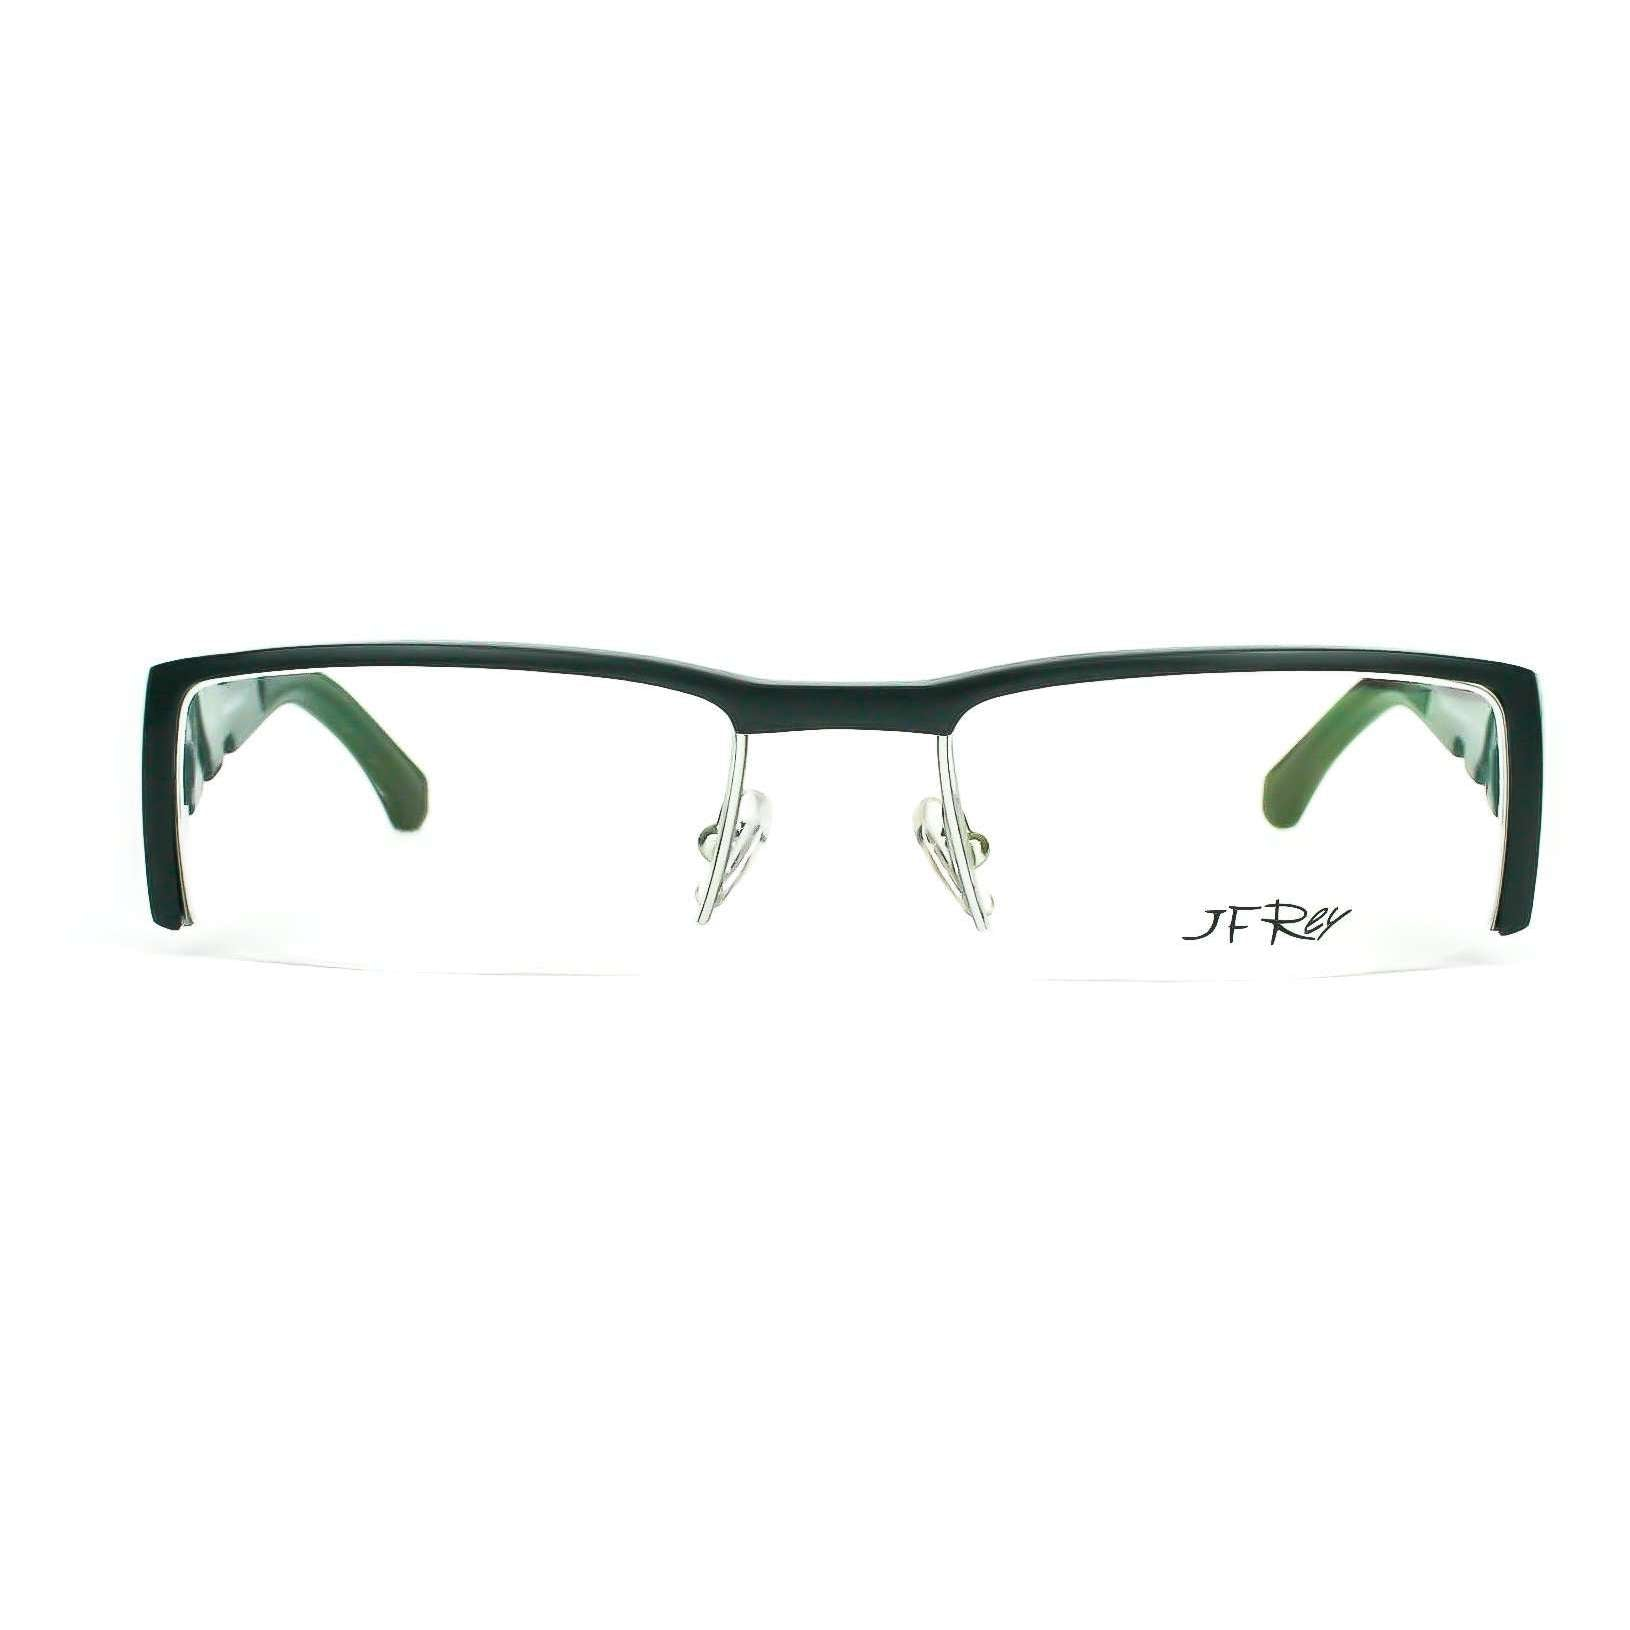 JF Rey Model 2281 Black and grey metal Glasses